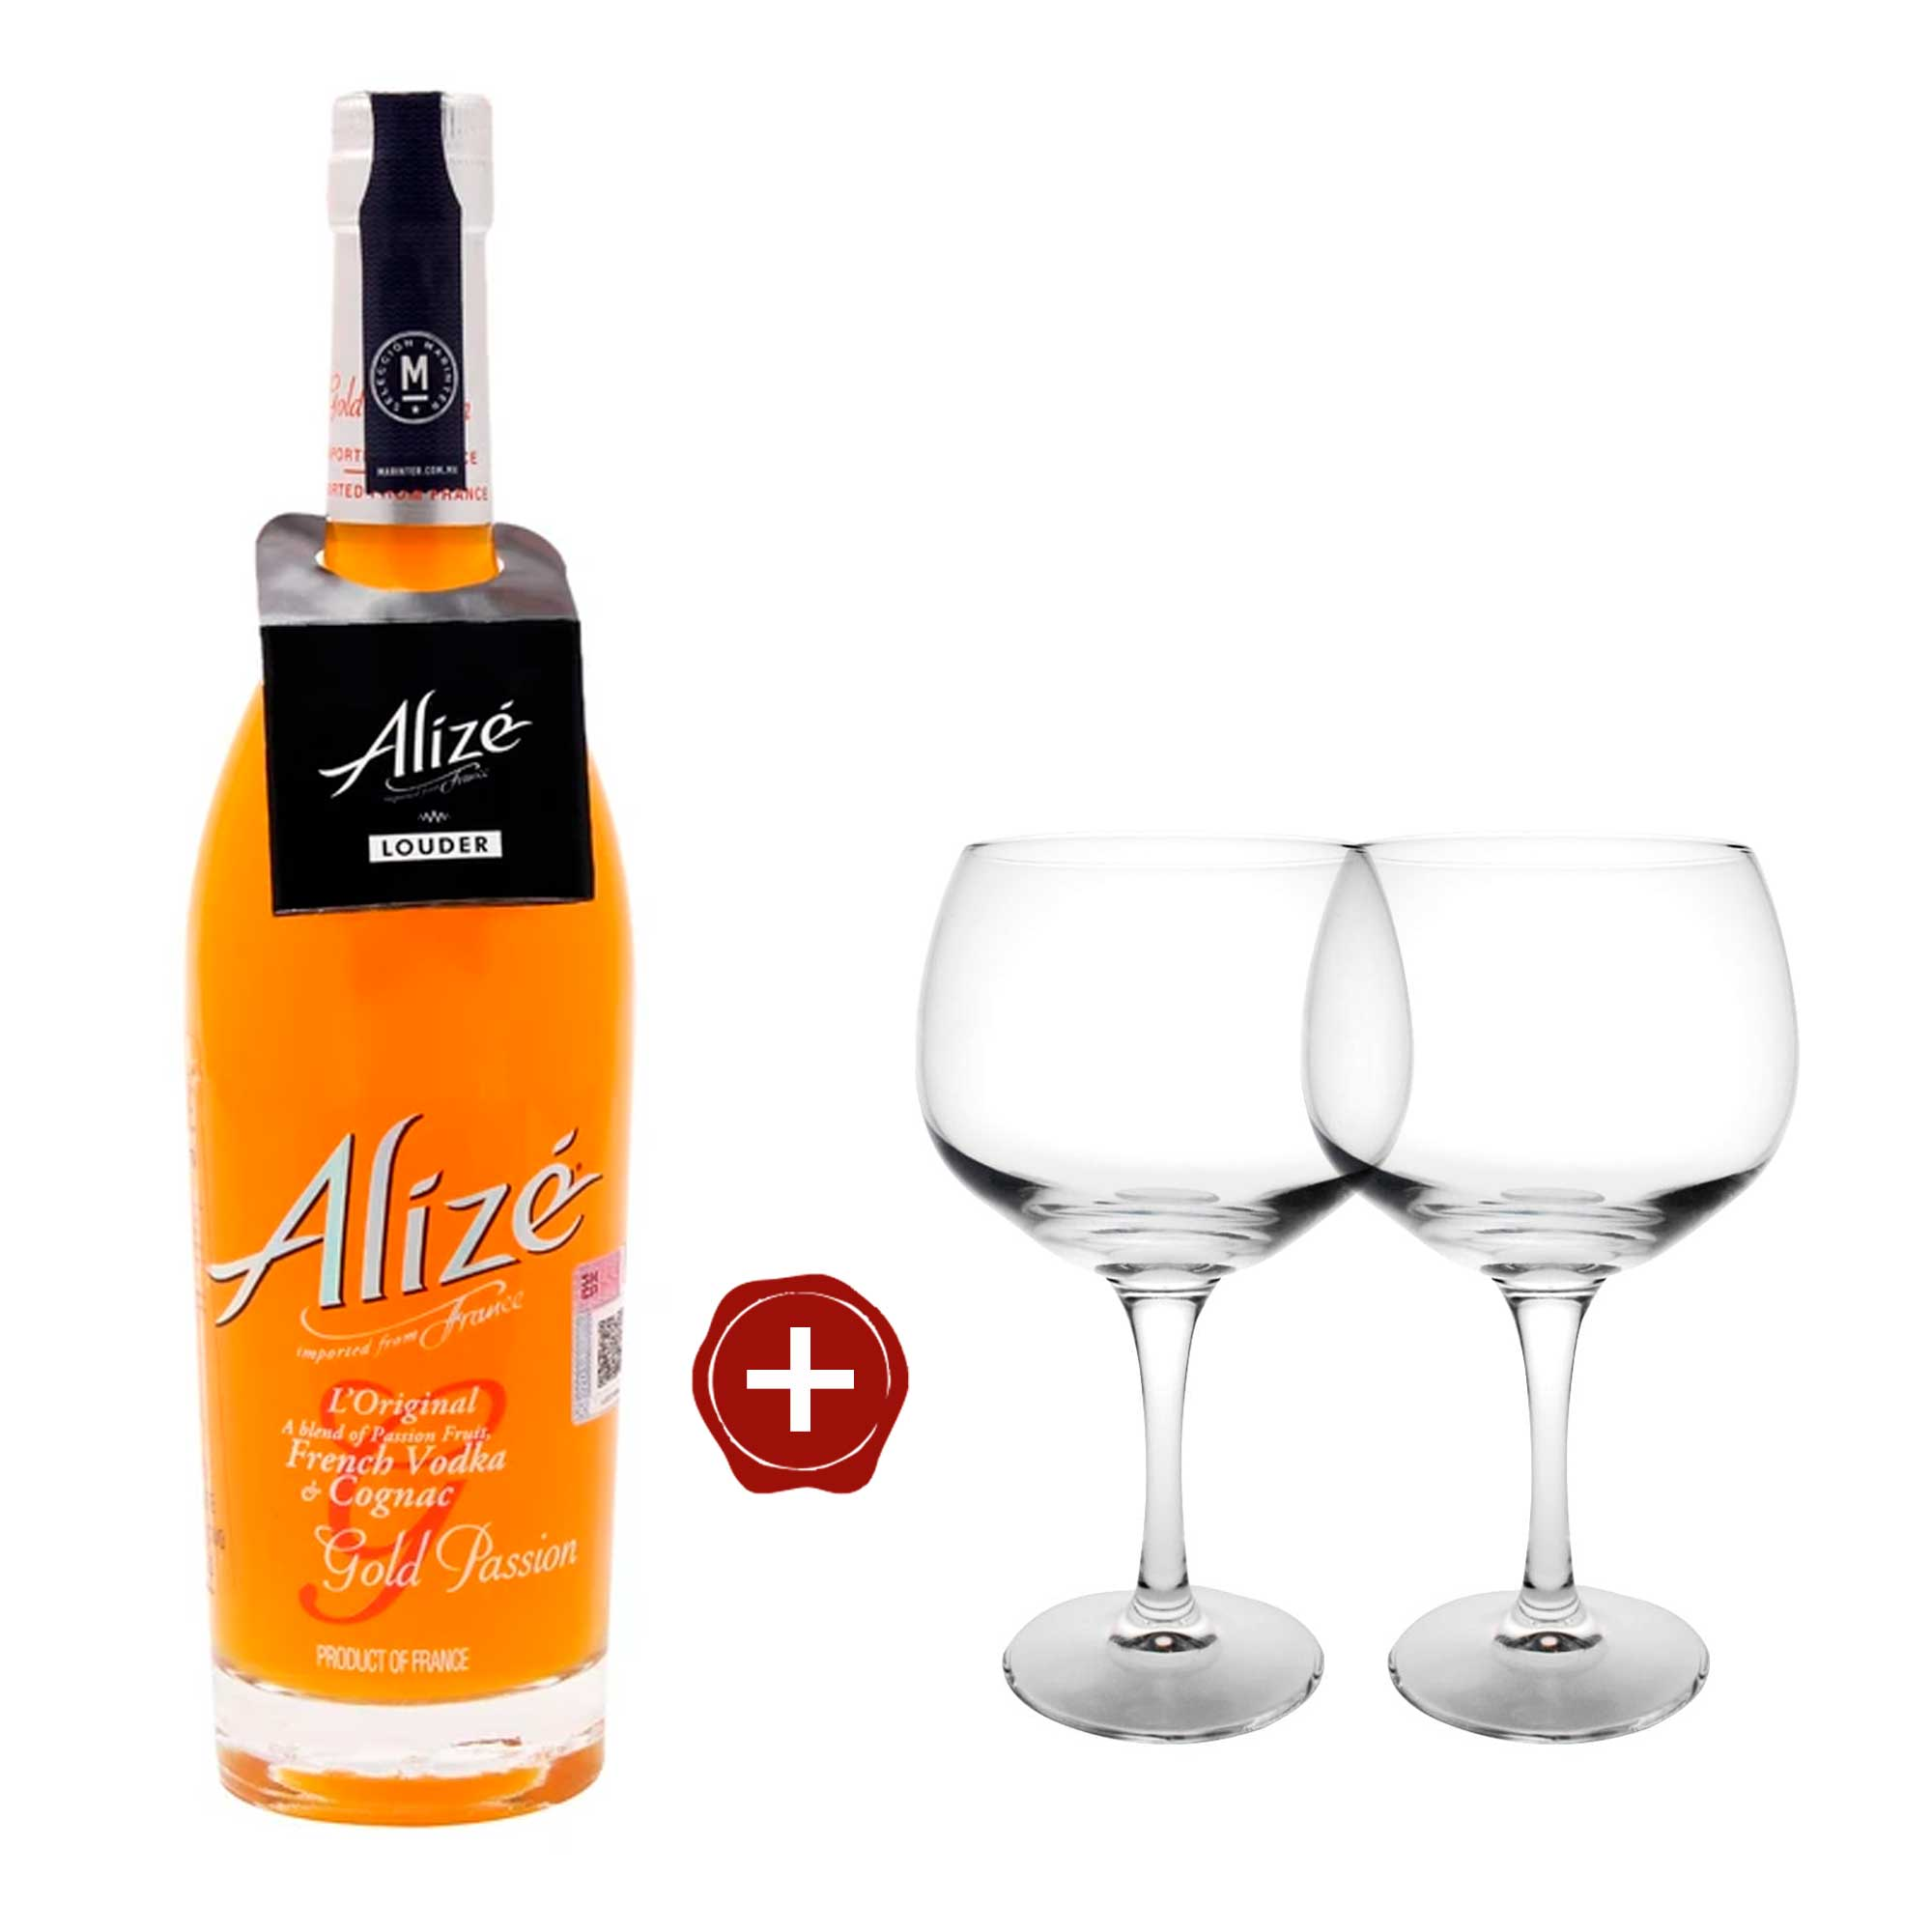 Alizé - Licor de Fruta - Gold Passion de 700 ml